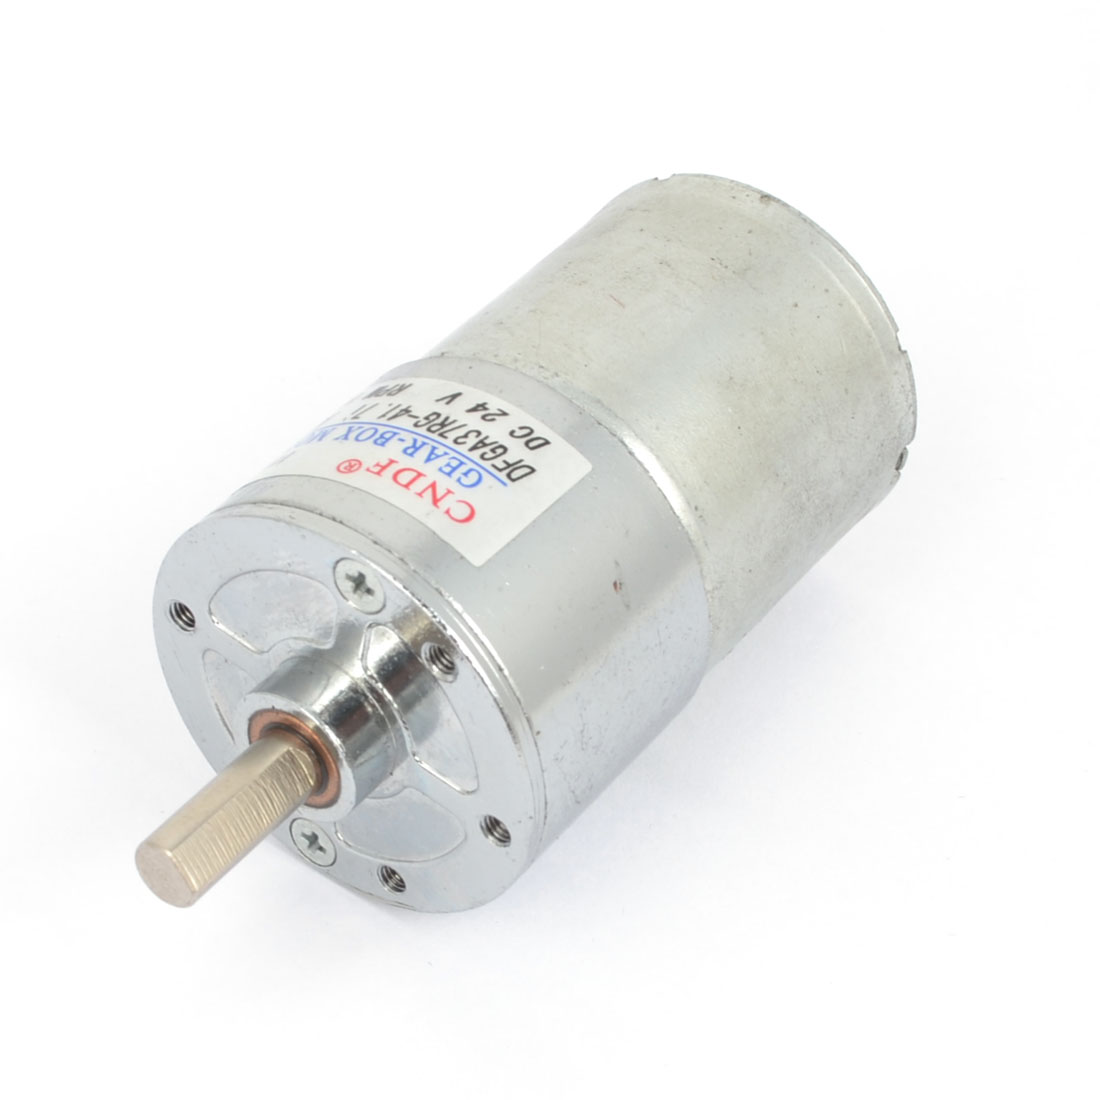 Electric Replacement DC 24V 100RPM Output Speed Generator Torque Motor